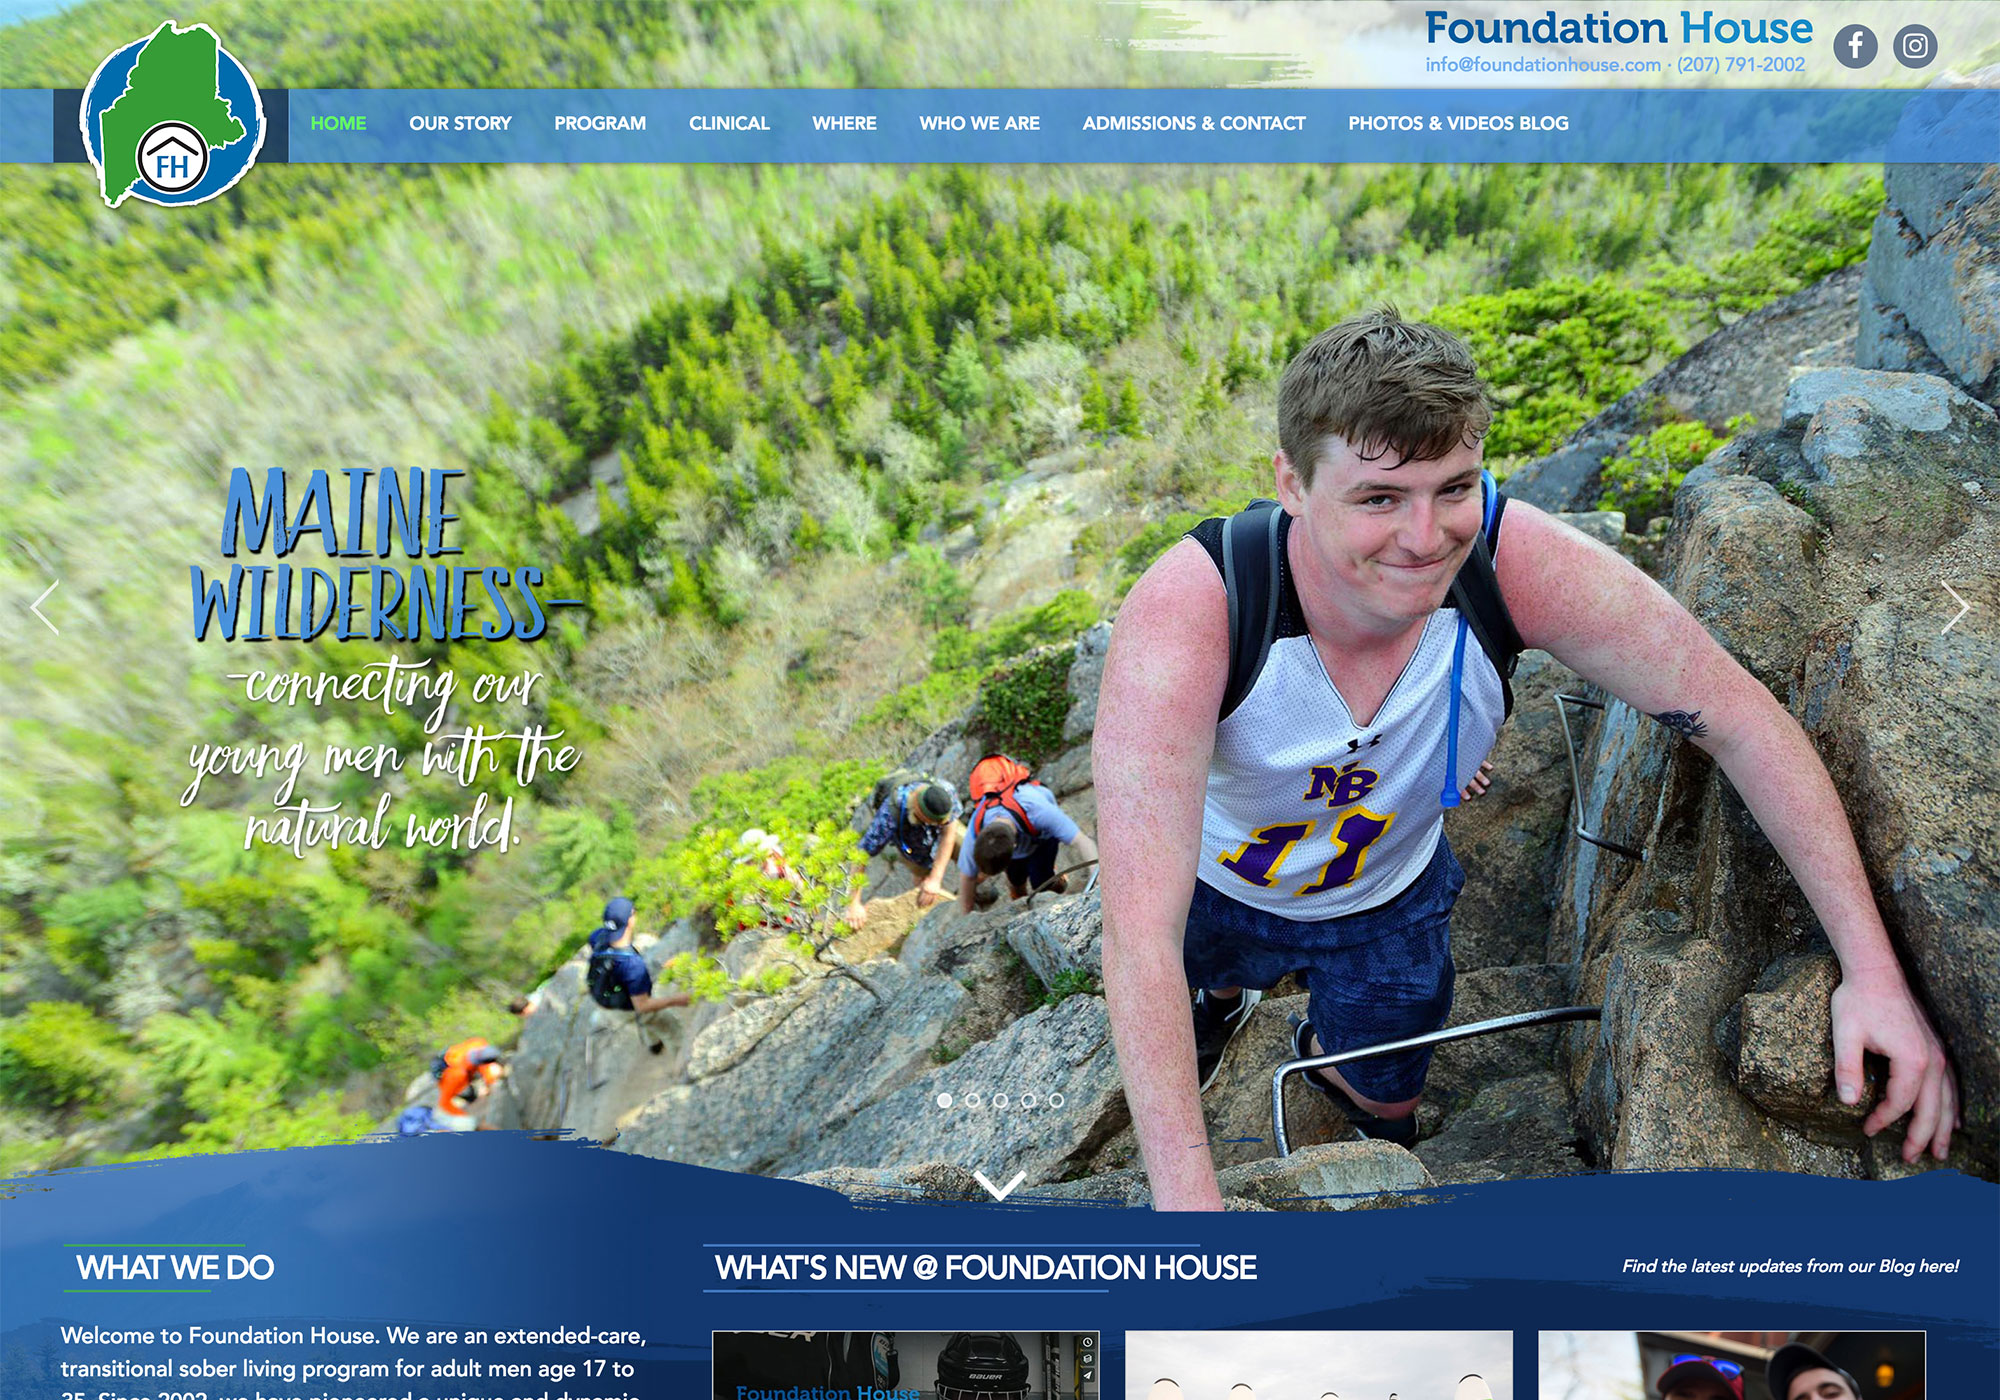 A screenshot of the SlickFish Studios designed and developed website for Foundation House in Portland, Maine